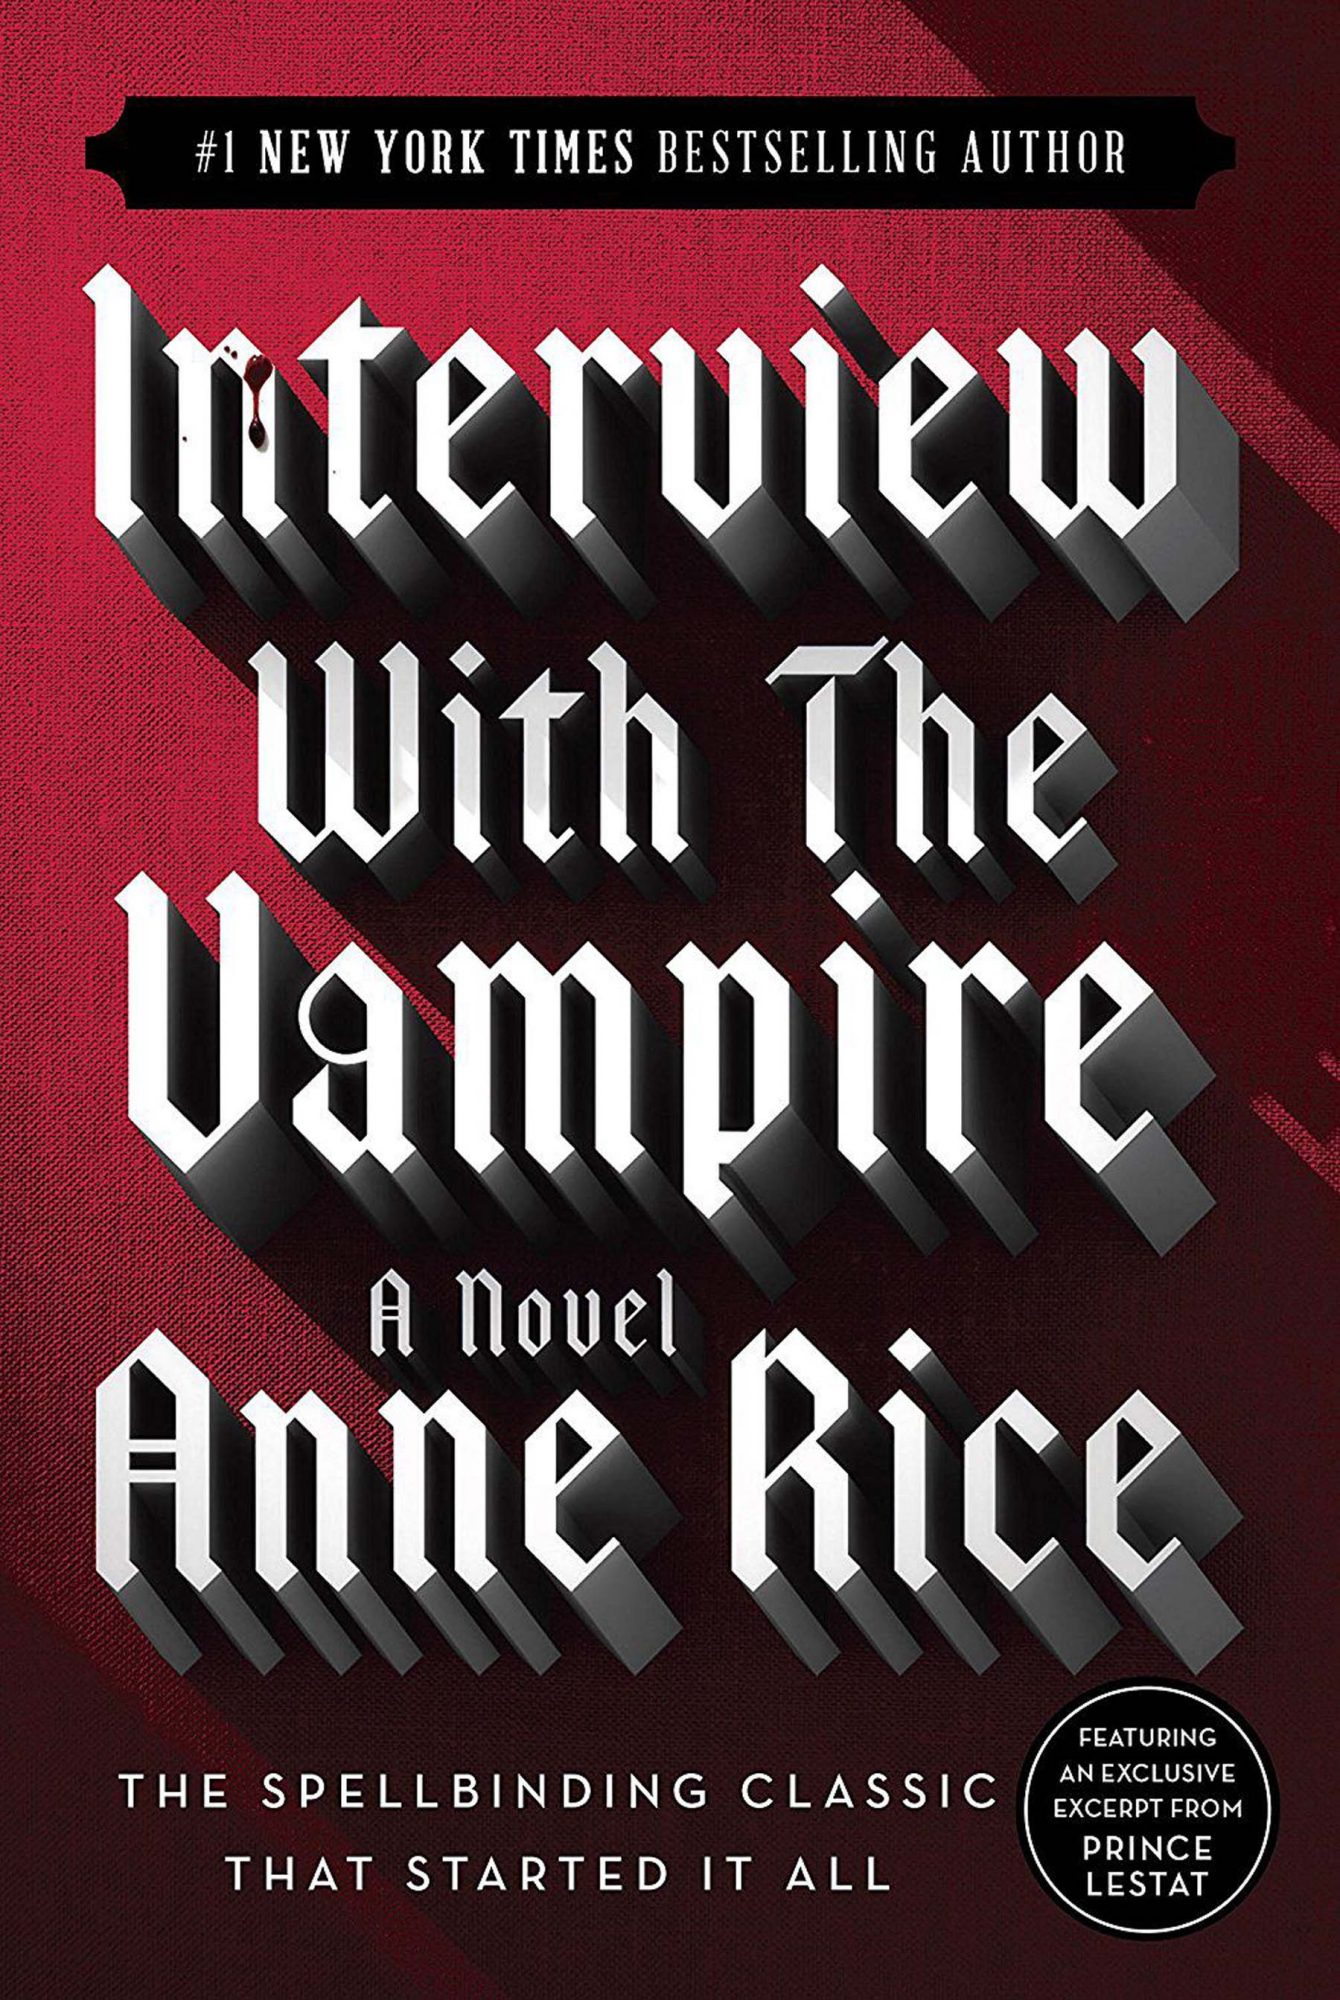 Interview with the Vampire by Anne Rice (1976)